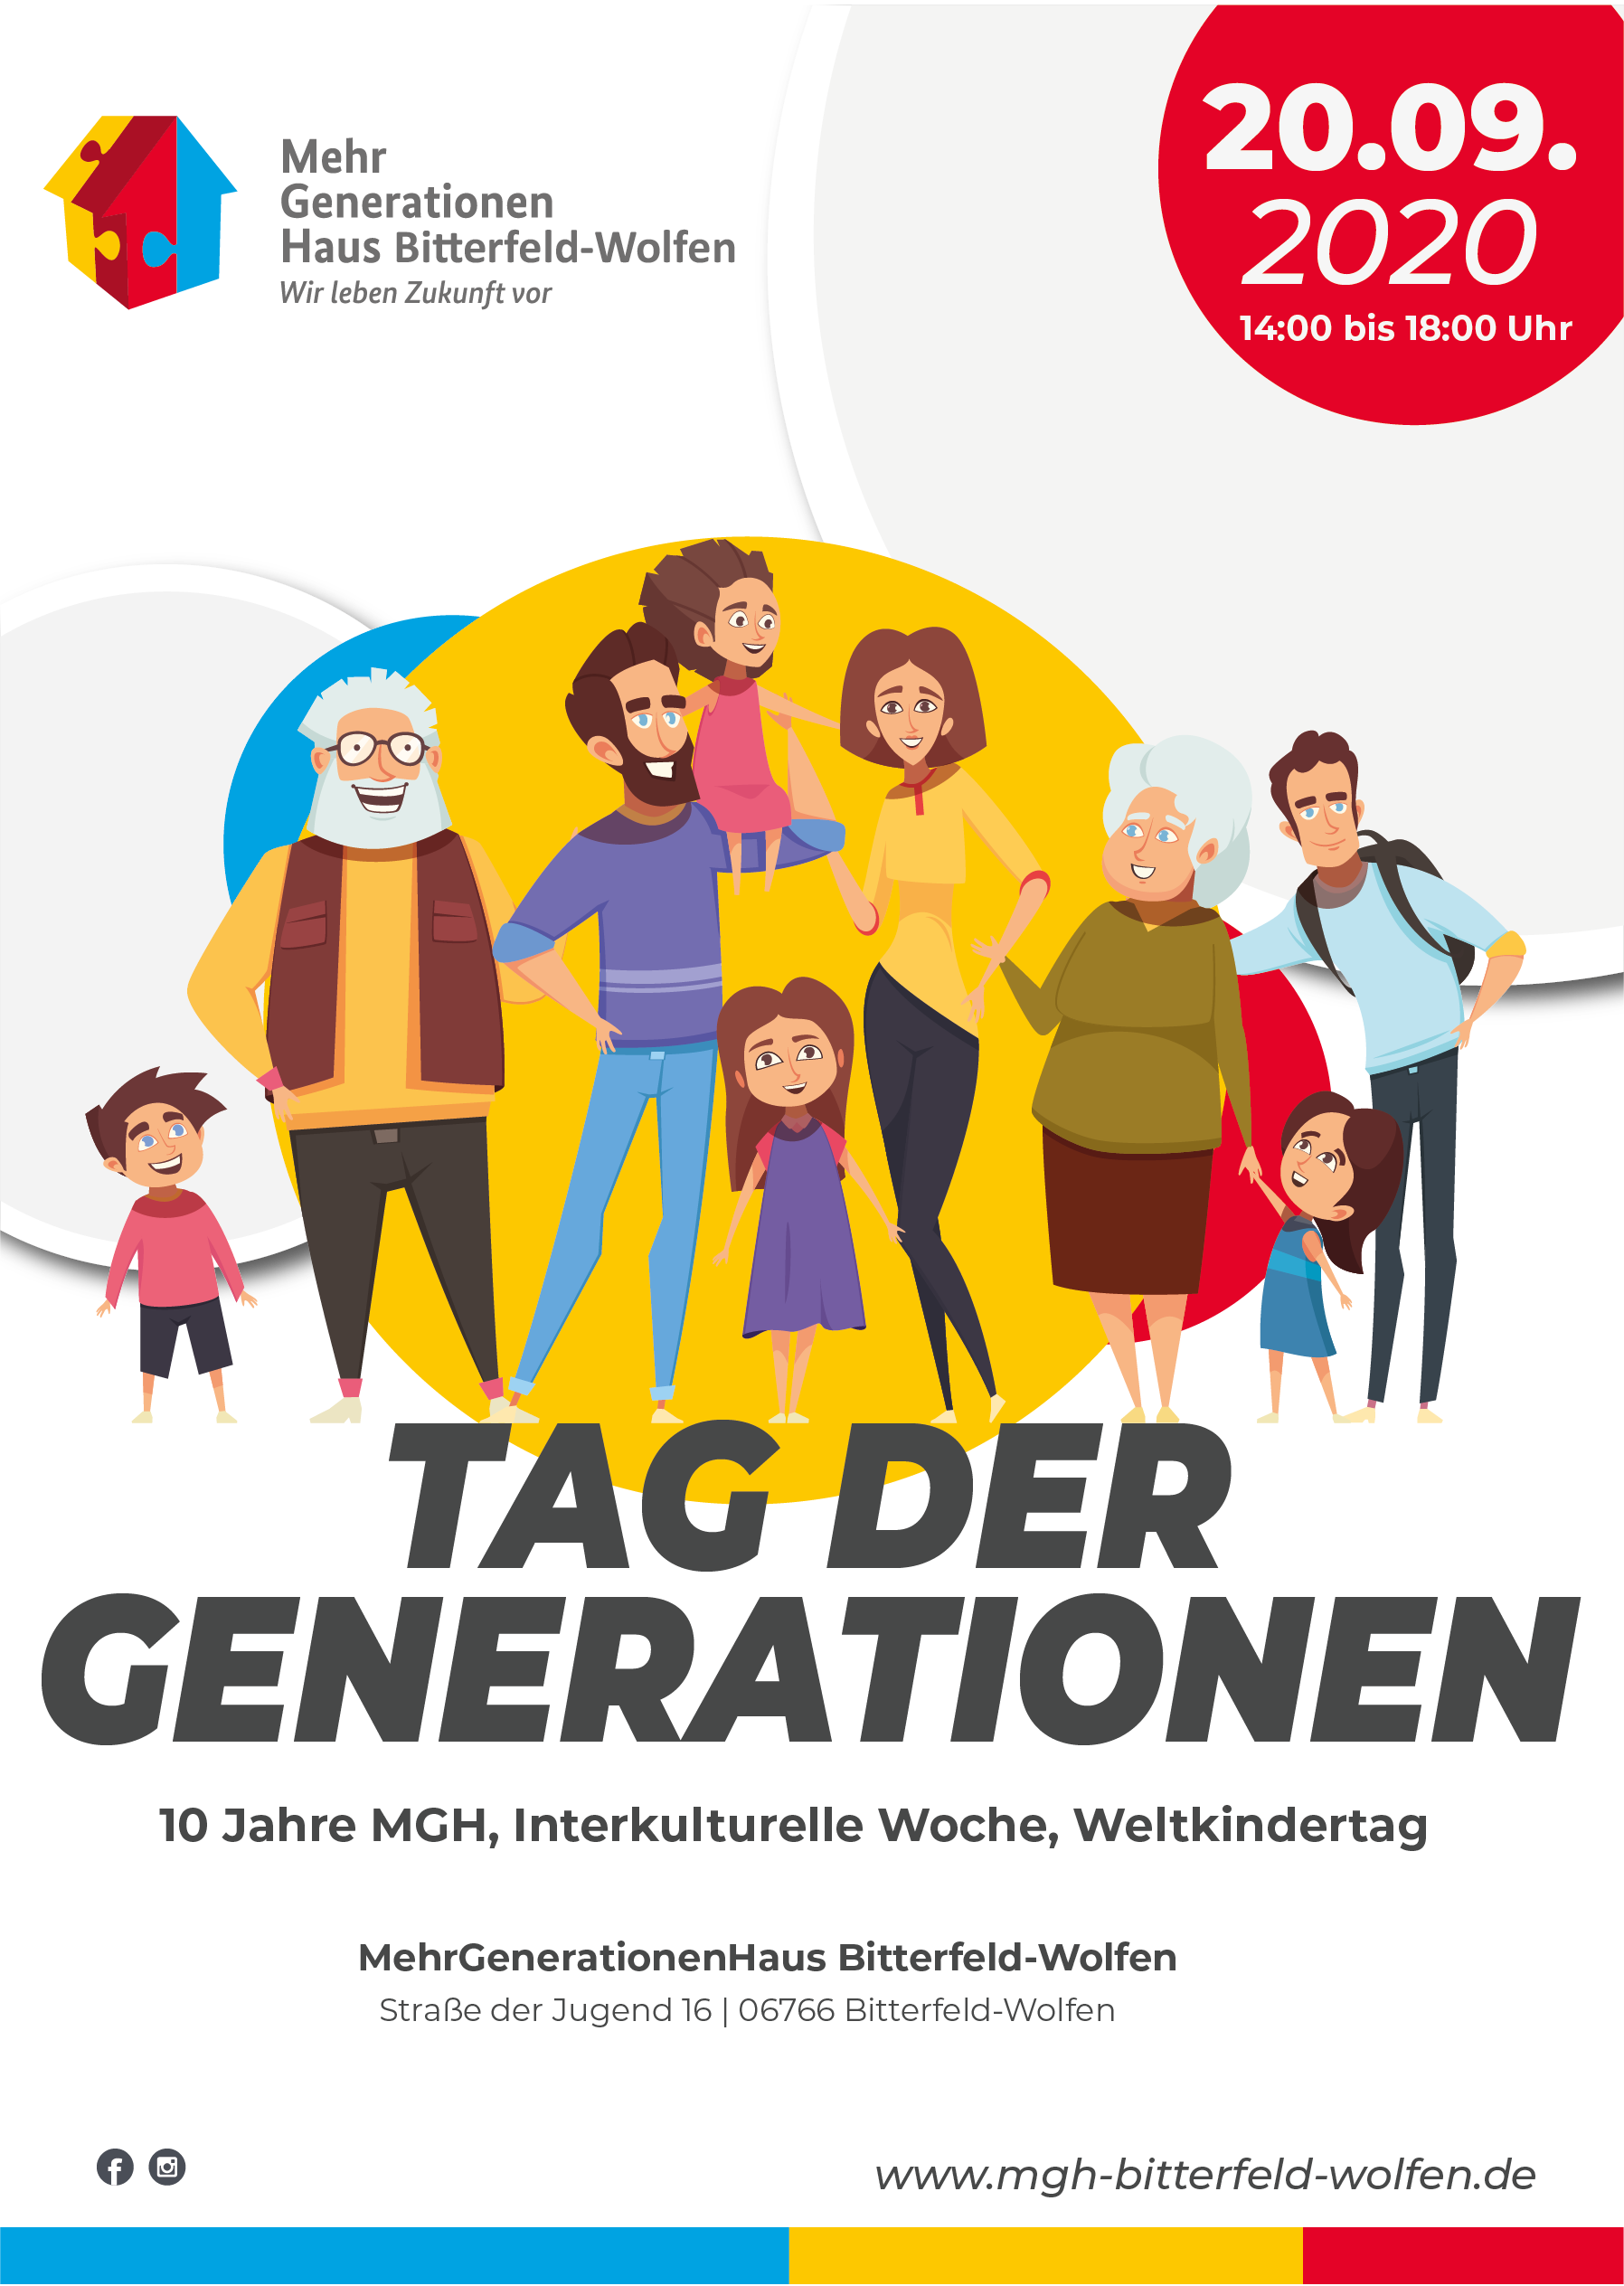 Tag der Generationen 2020